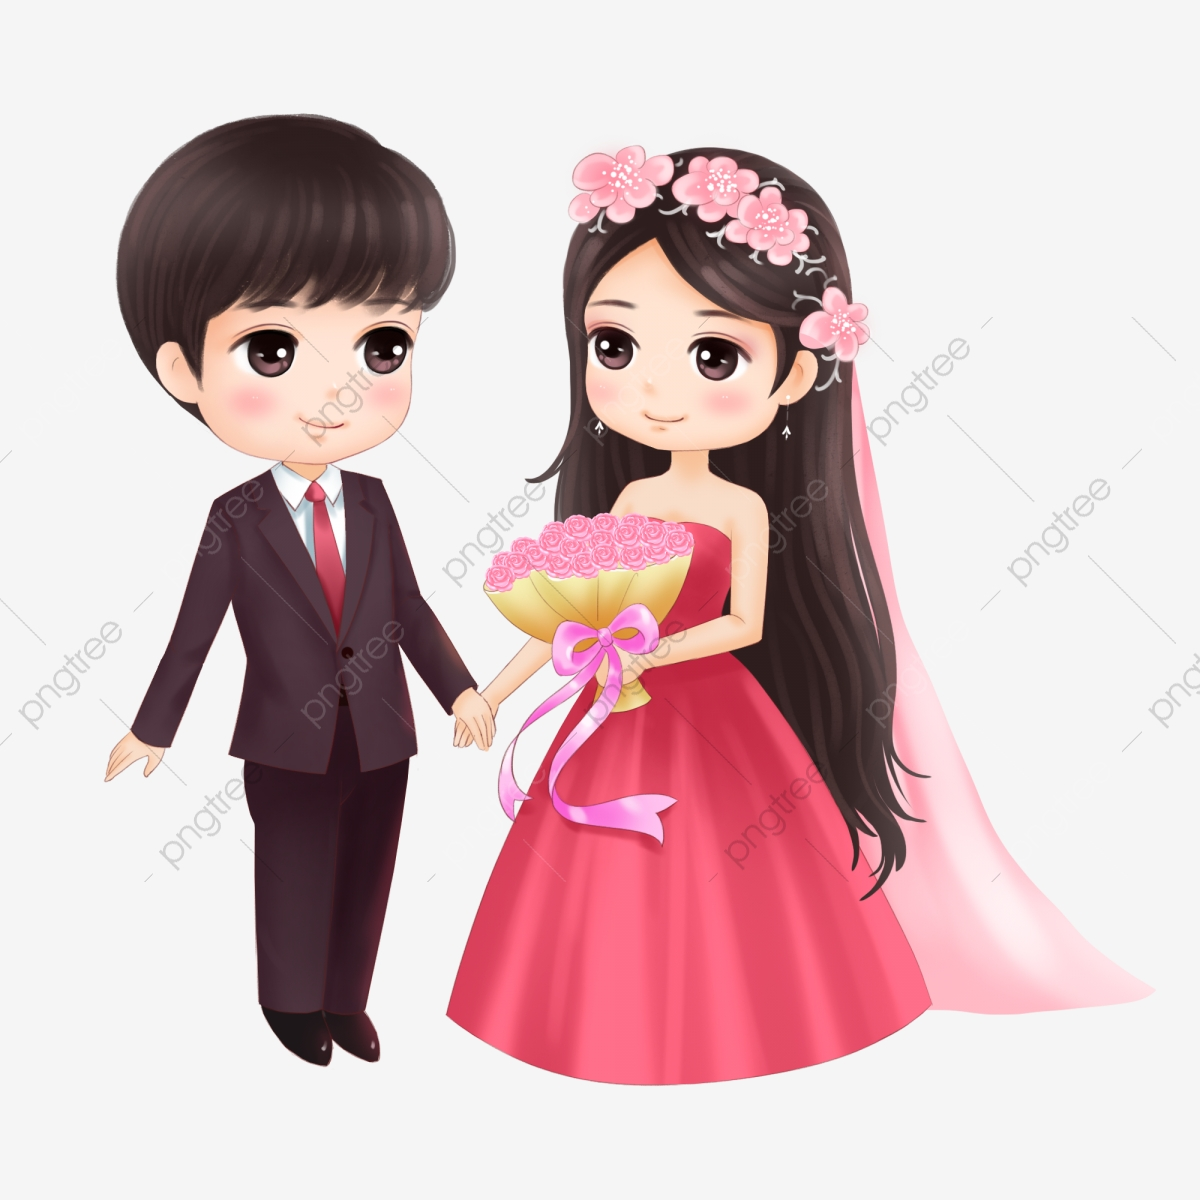 Valentines Day Couple Cartoon Wedding Comics Couple Comics Wedding Comics Wedding Cartoon Png Free Buckle Png Transparent Clipart Image And Psd File For Free Download